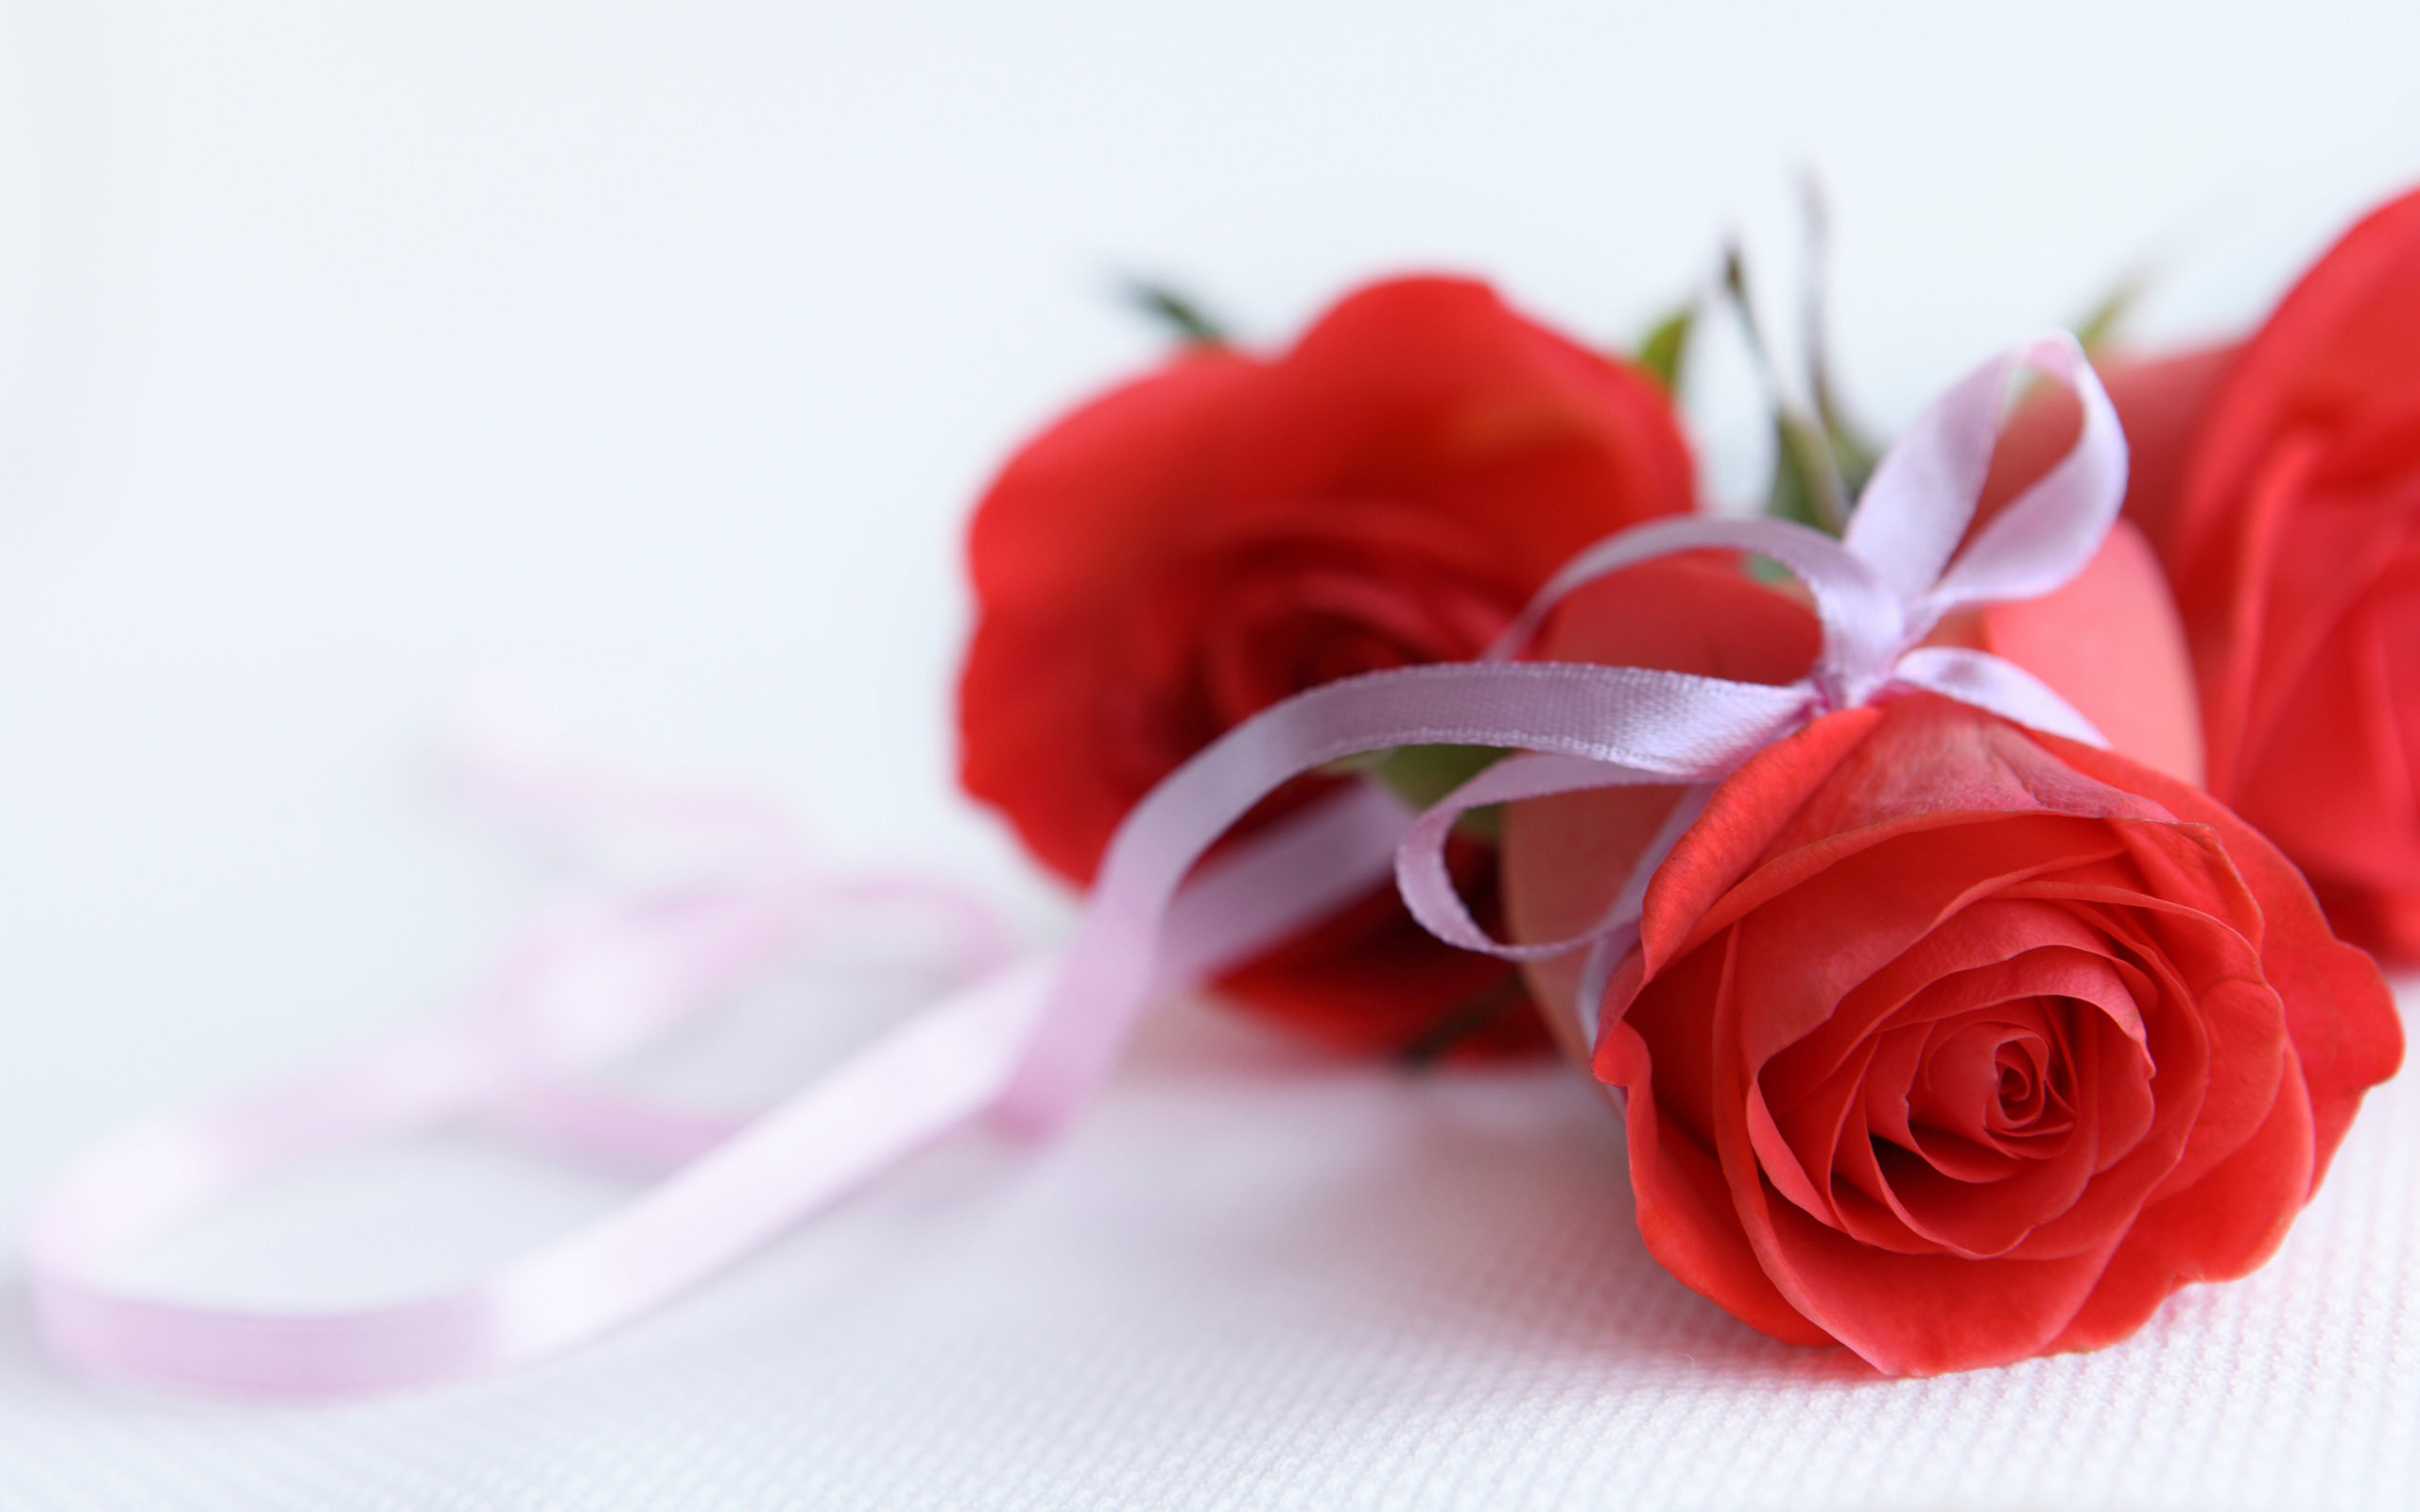 Rose flowers images hd wallpapers